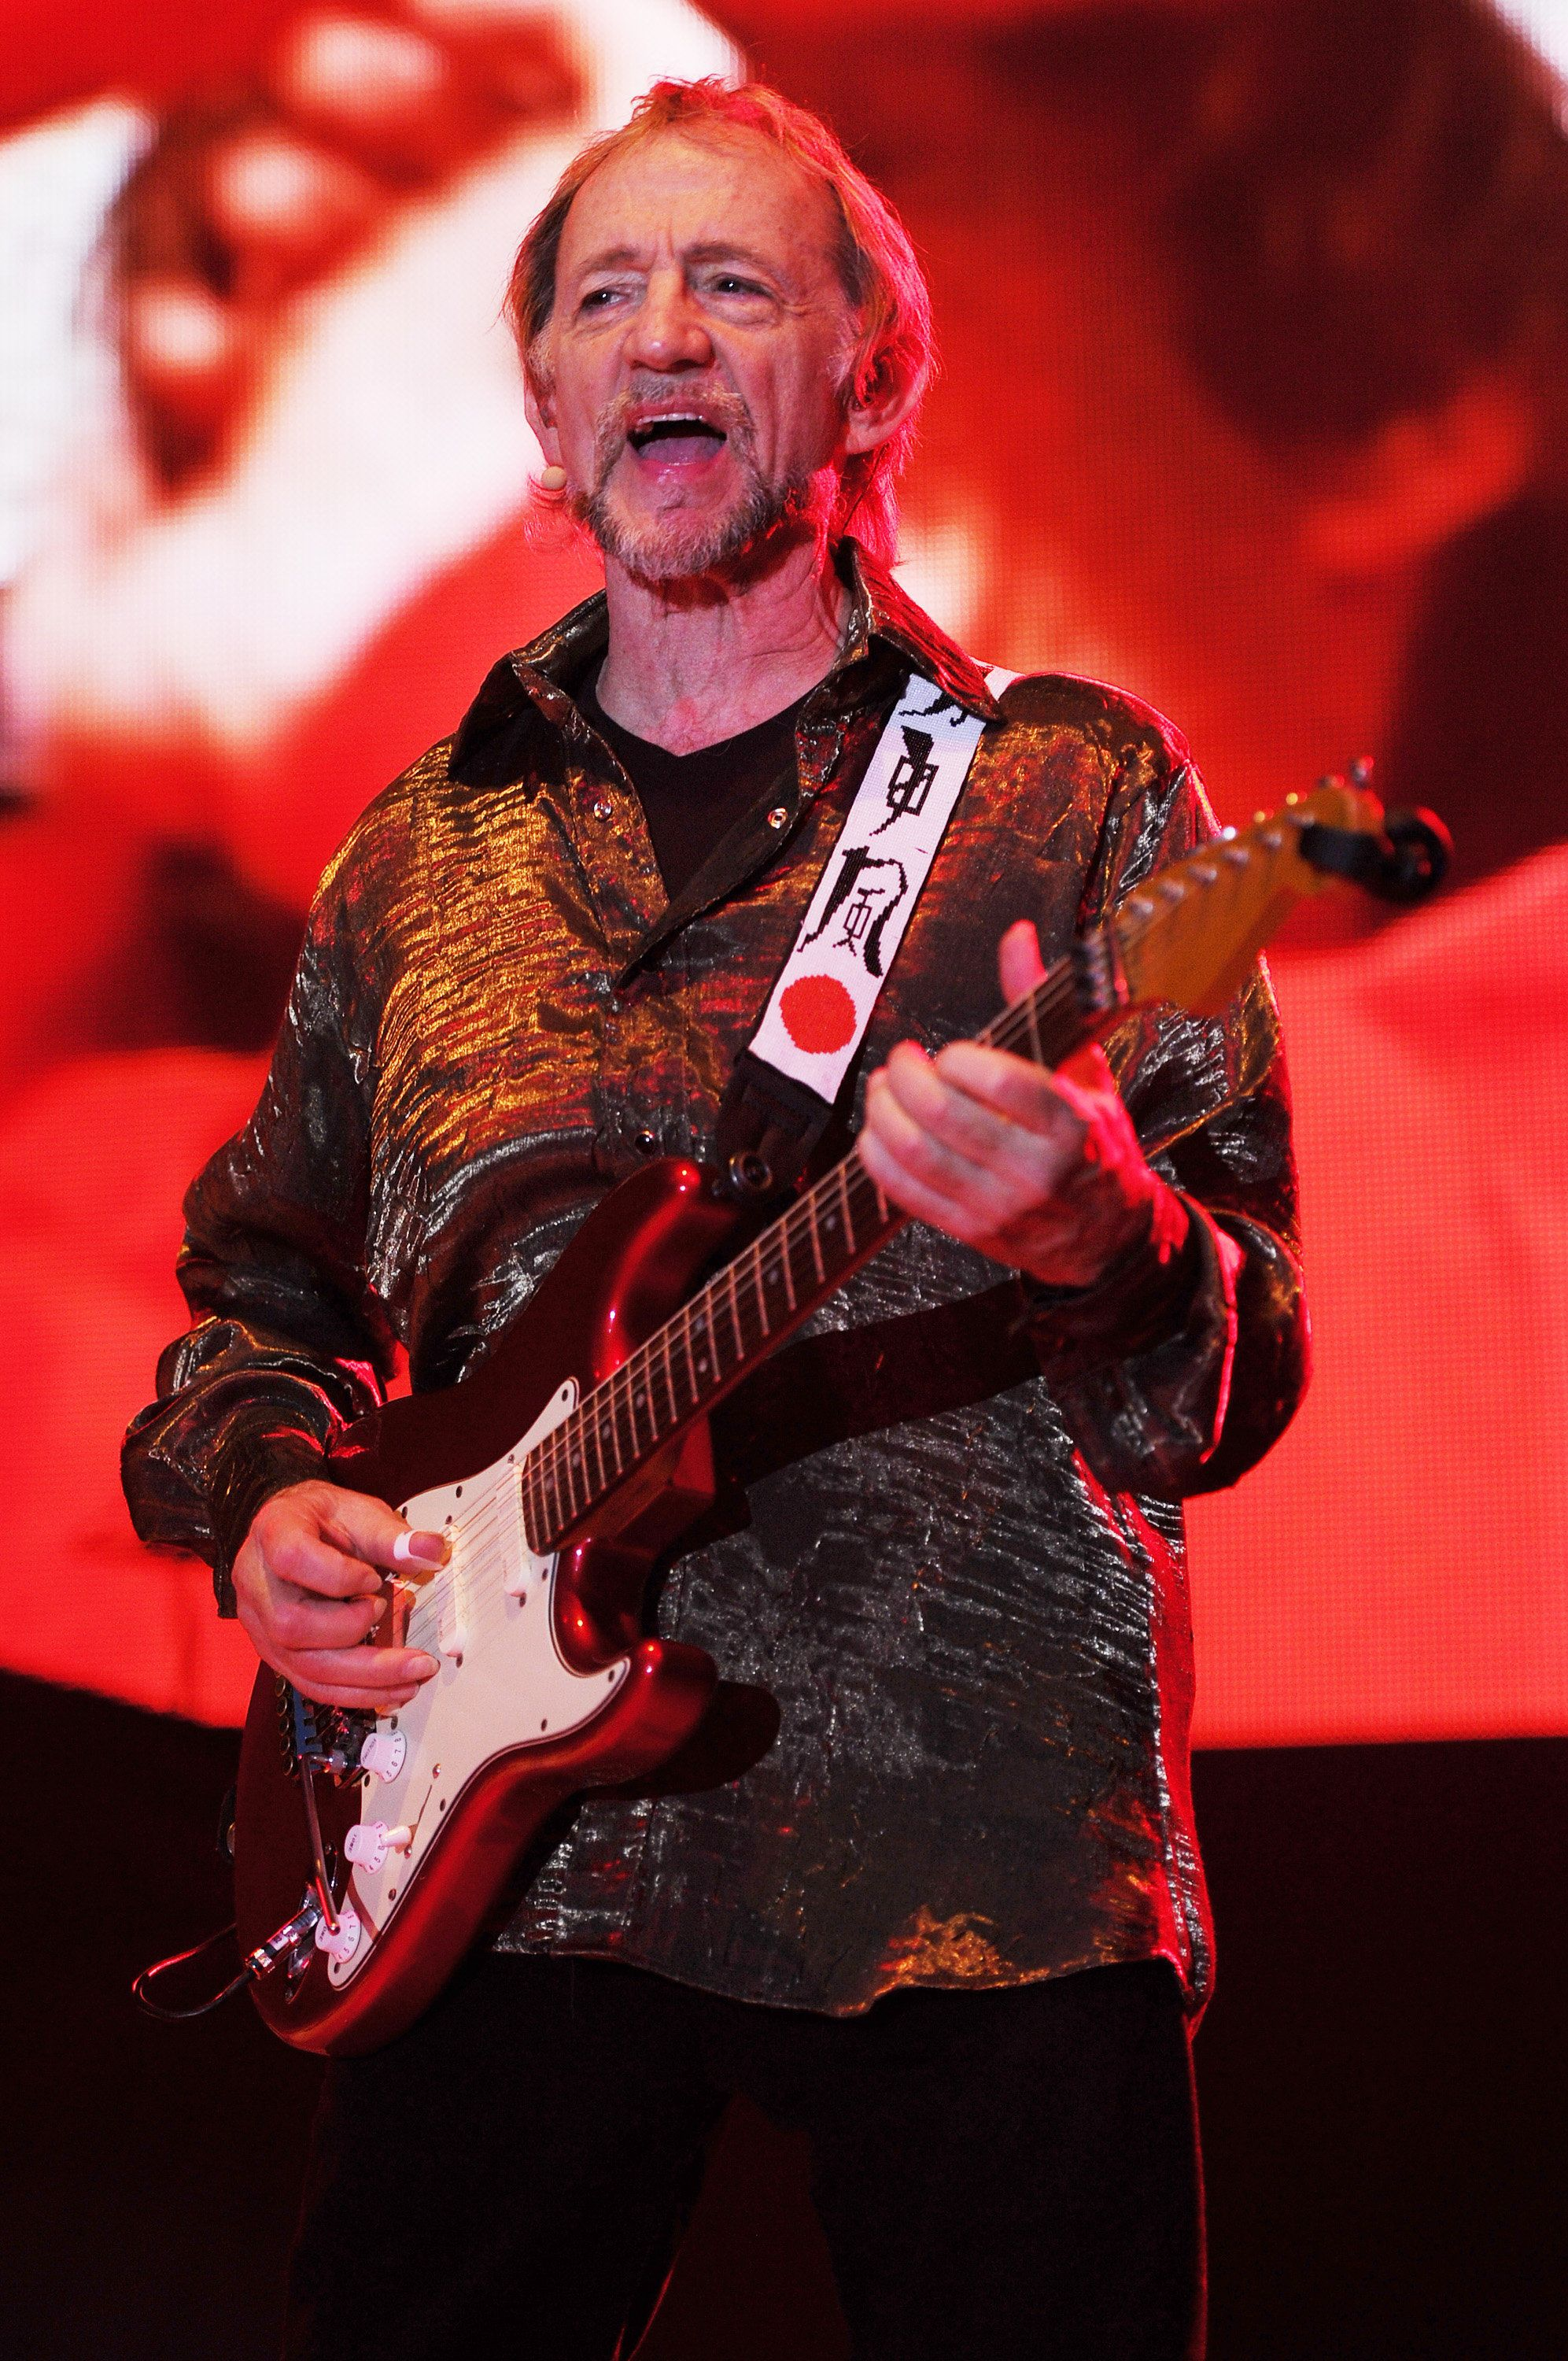 Peter Tork of The Monkees performs during the Mid Summers Night Tour at the Mizner Park Amphitheater on Saturday, July 27, 2013 in Boca Raton, Florida  (Photo by Jeff Daly/Invision/AP)